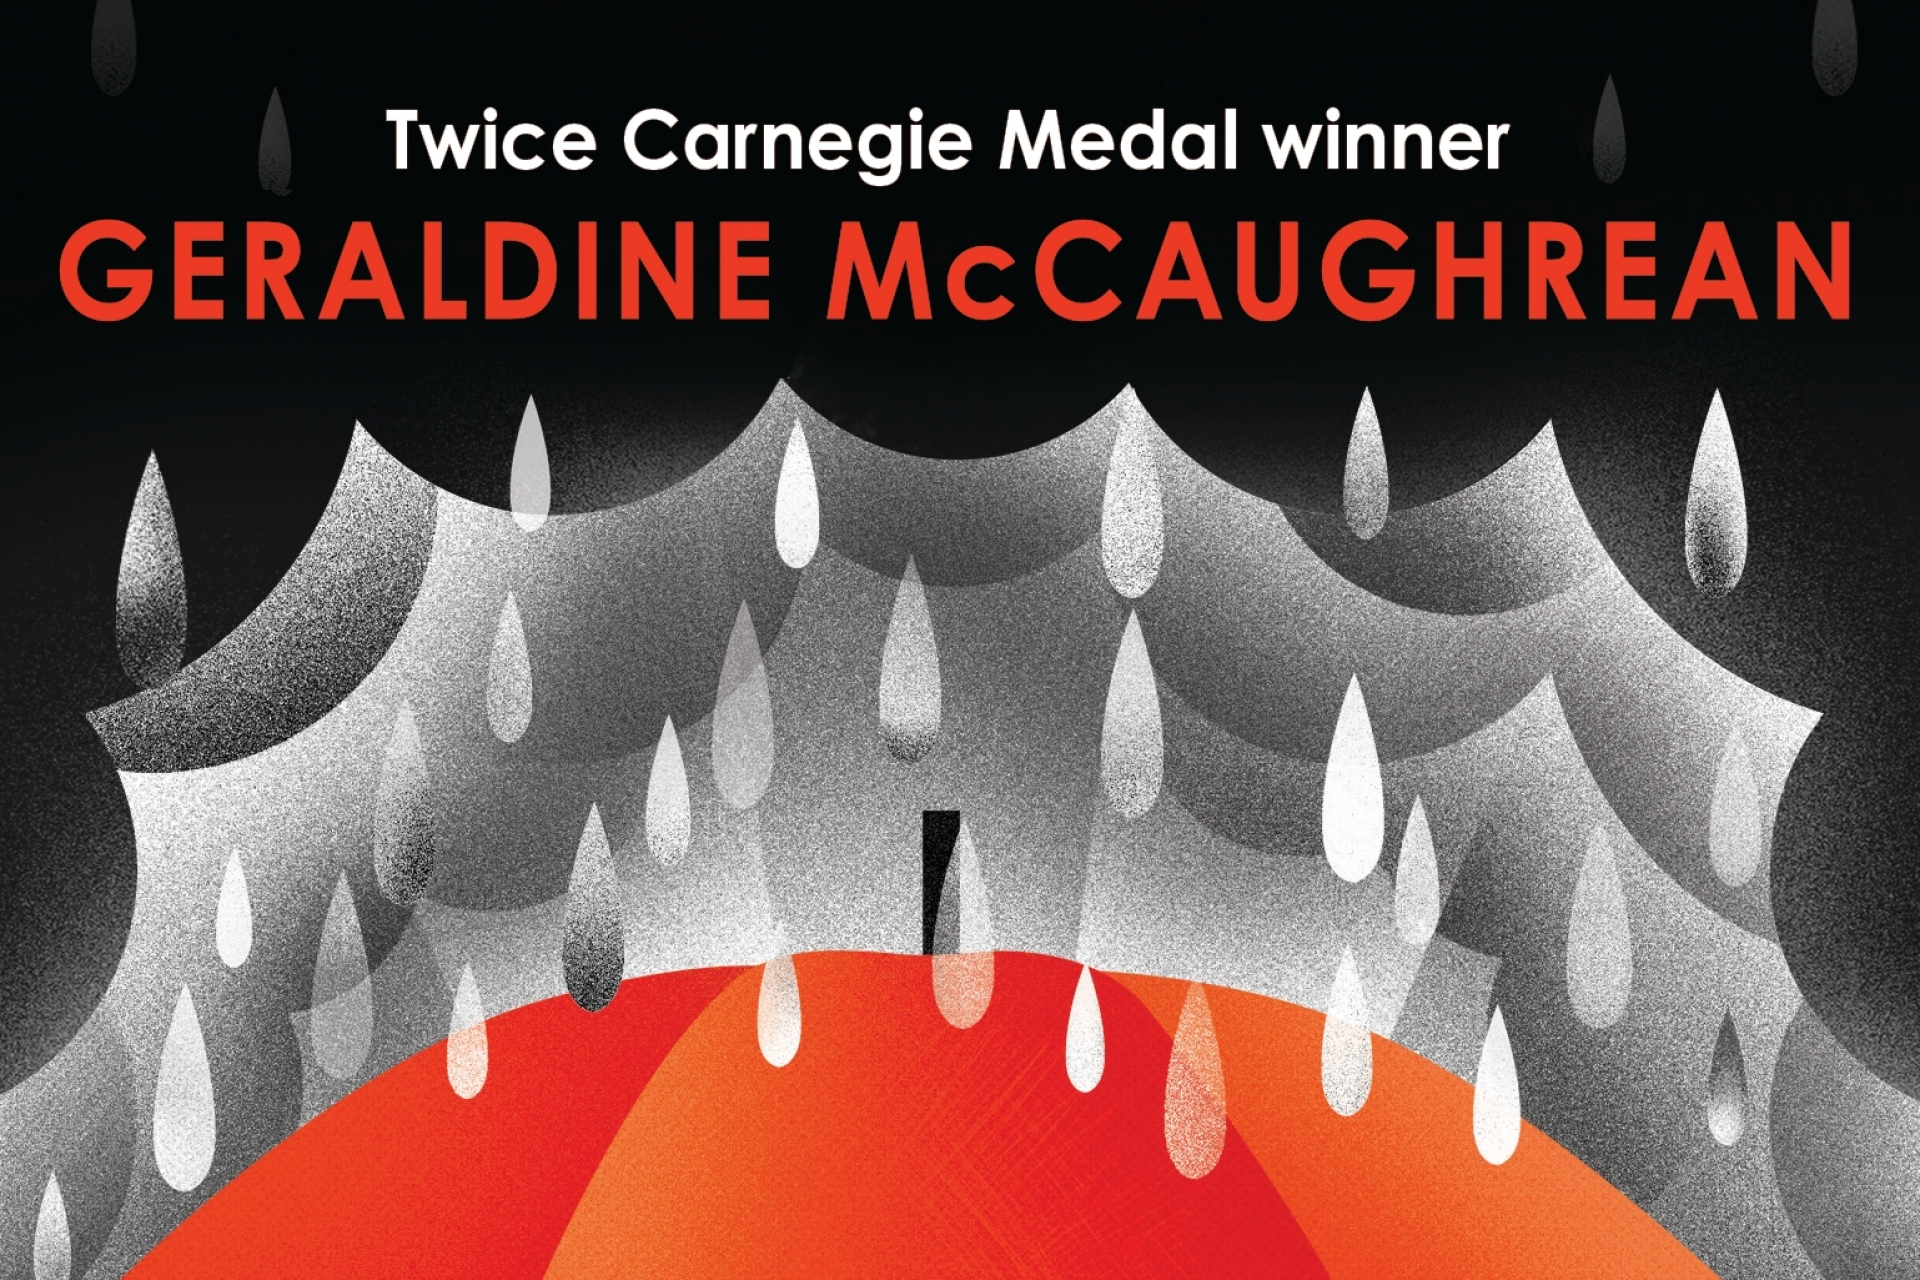 A Q&A with the supremely talented author, our Guest Editor, Geraldine McCaughrean